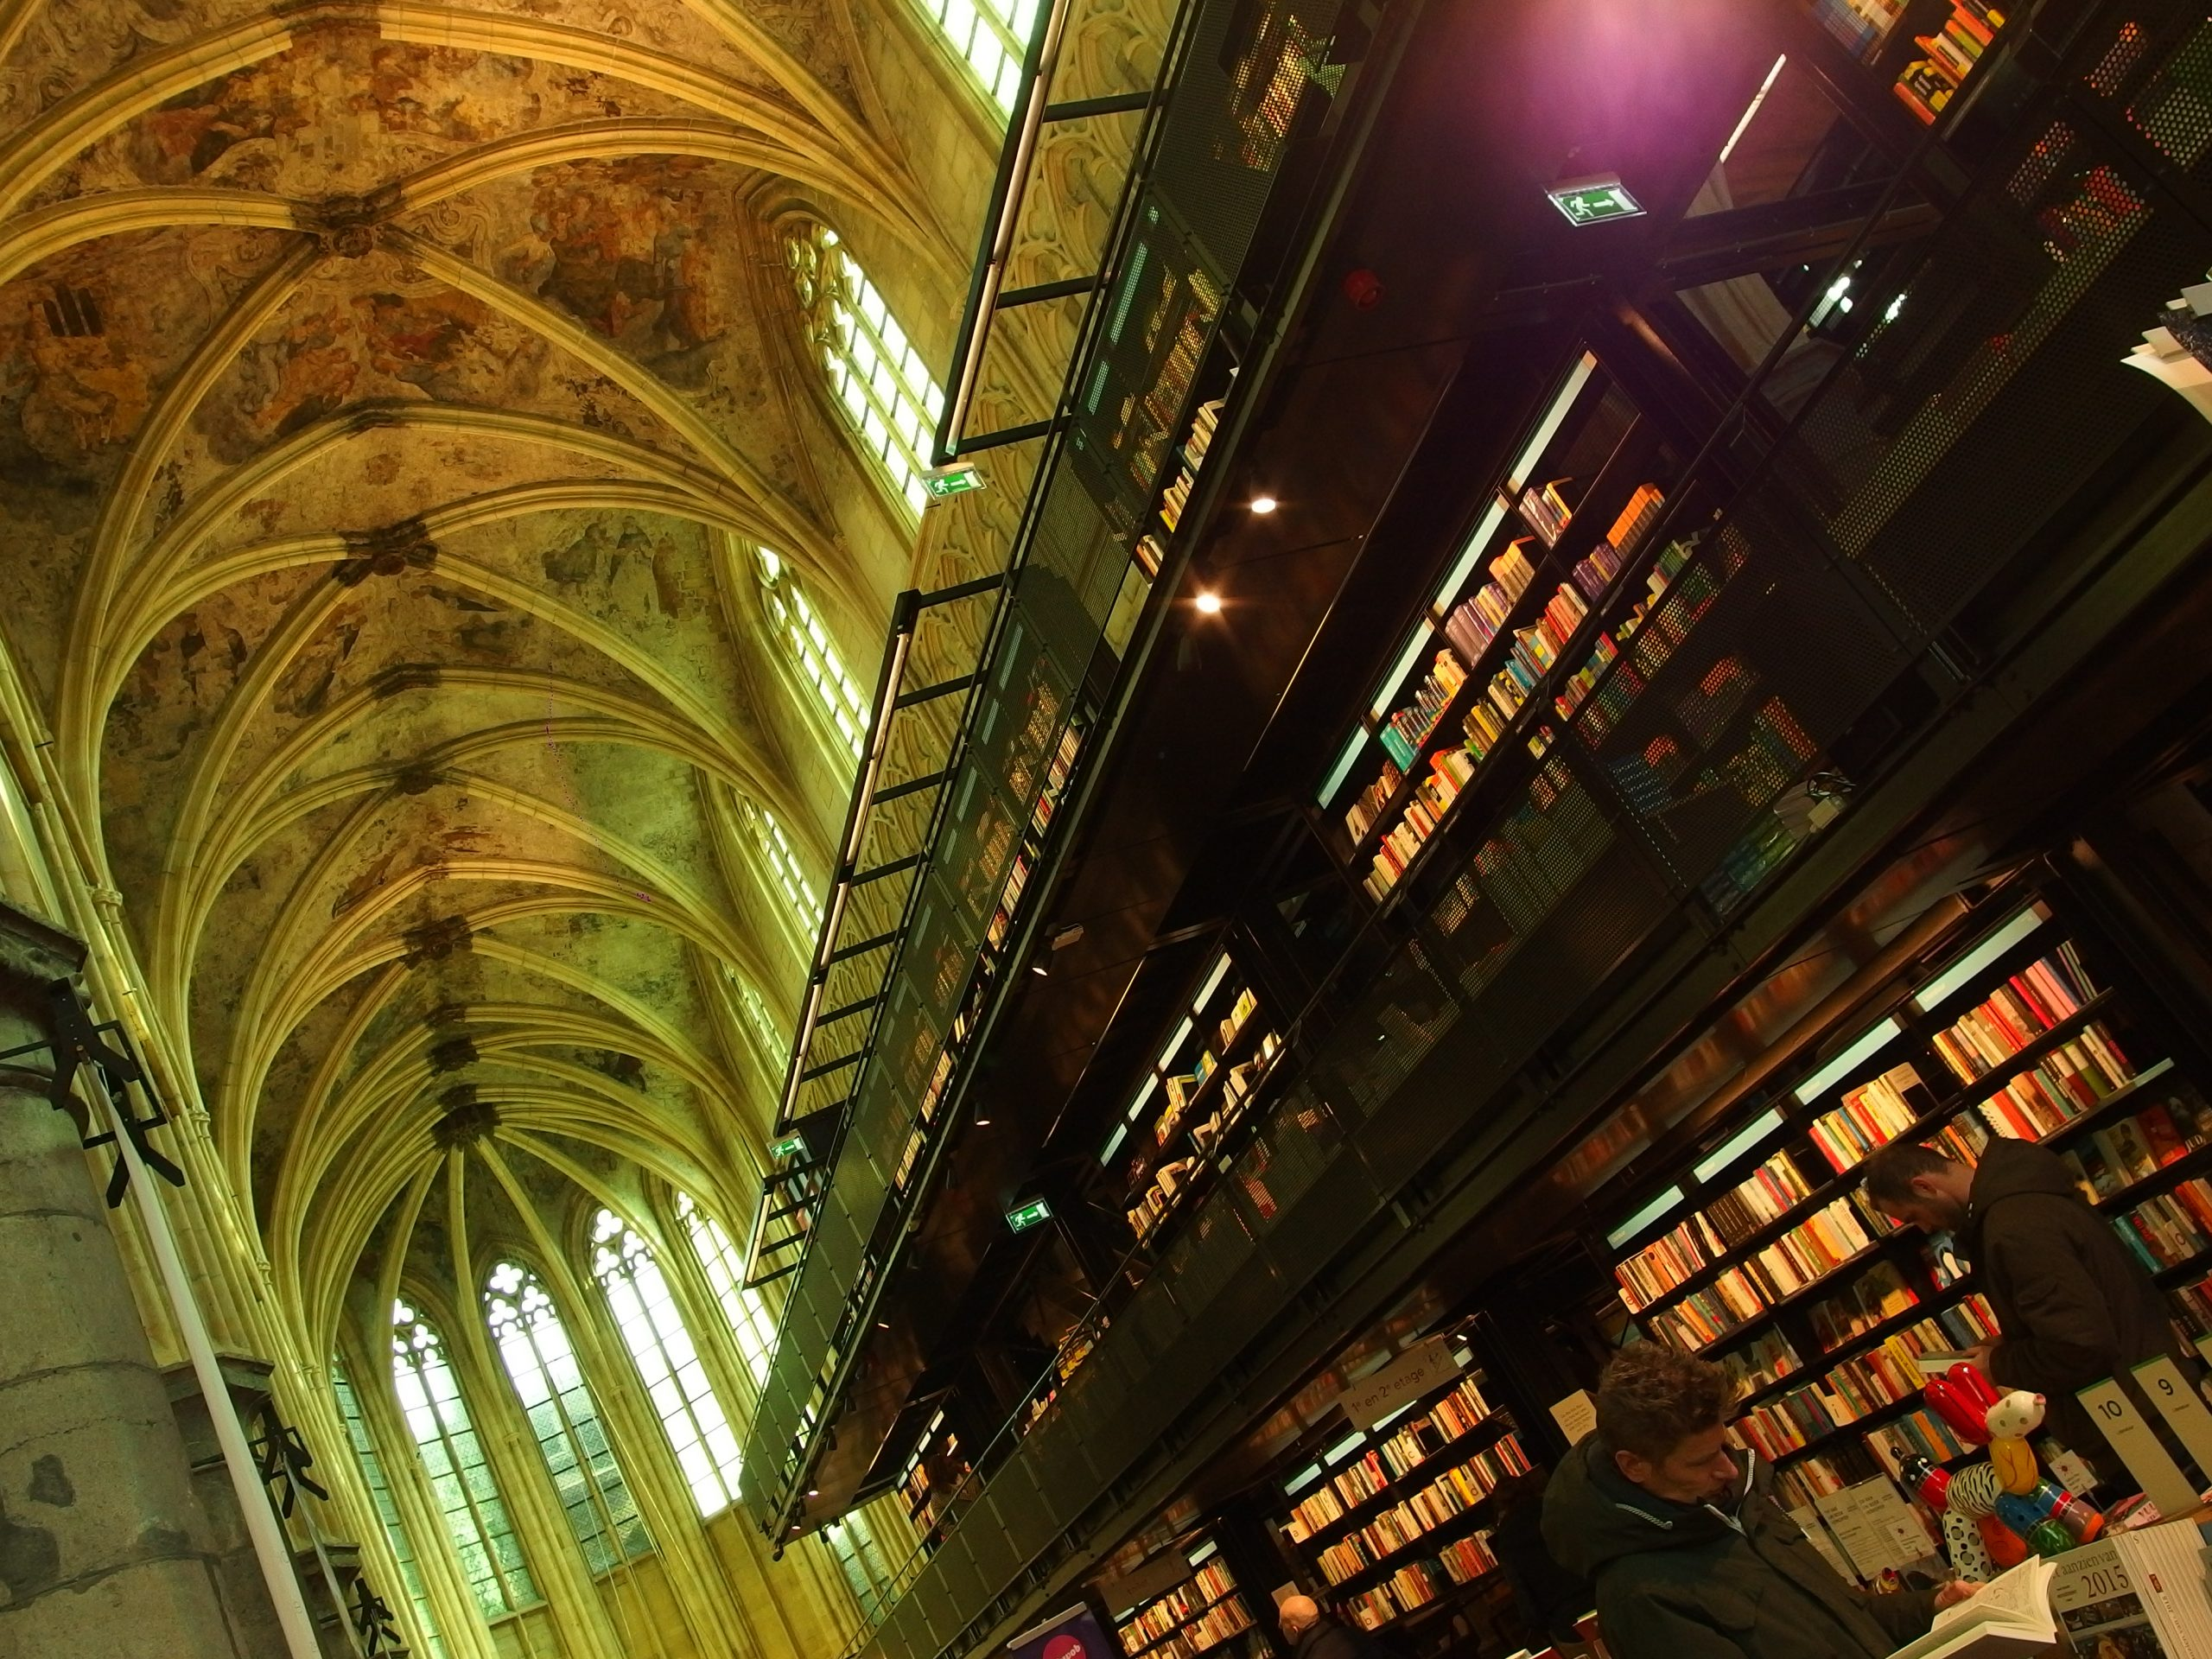 A Gargantuan Bookshop in the 13th Century Church: Gertrude Stein Would Applaud